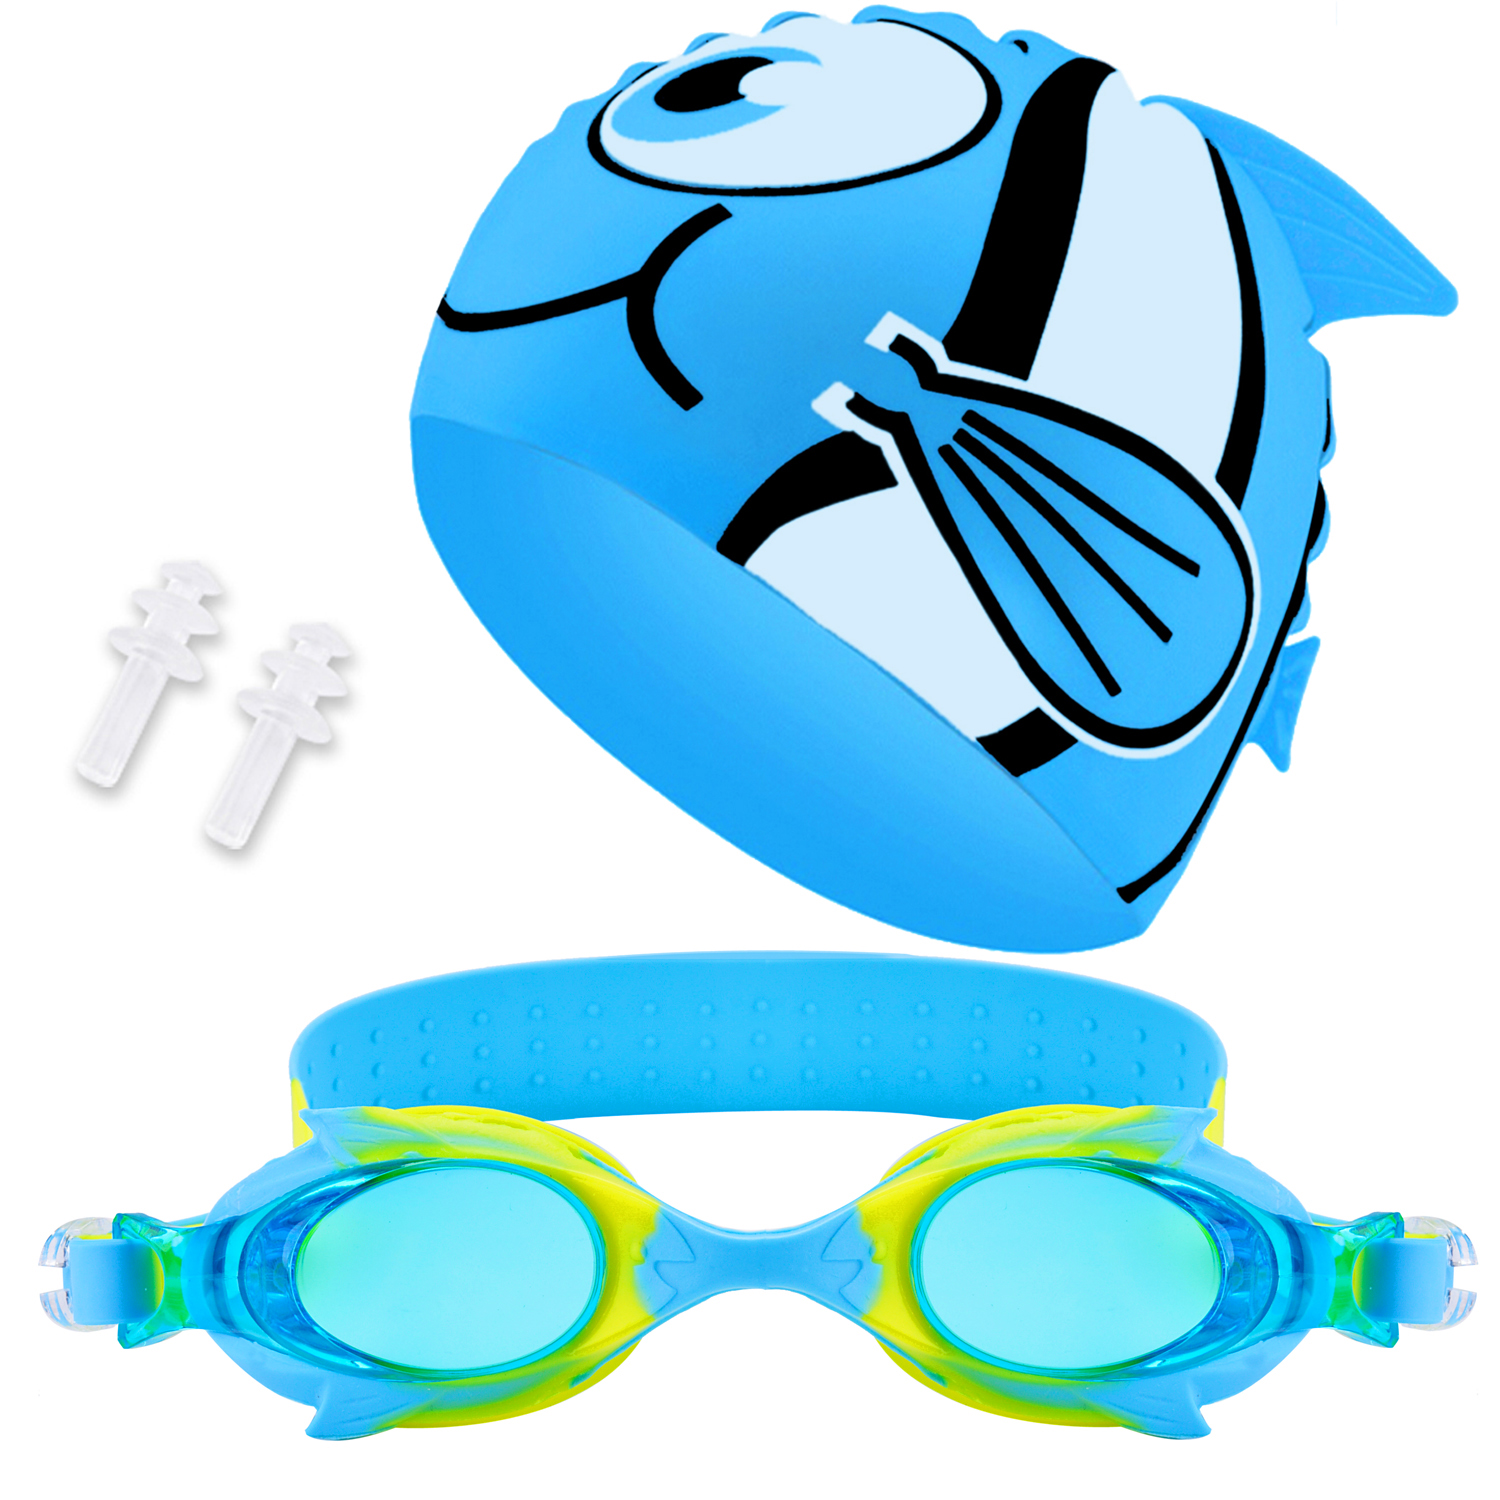 Swim Cap Swim Goggles Set, Aniwon Antifog Swimming Accessories with Ear Plugs Waterproof Swimming Cap for Kids Girls... by Aniwon